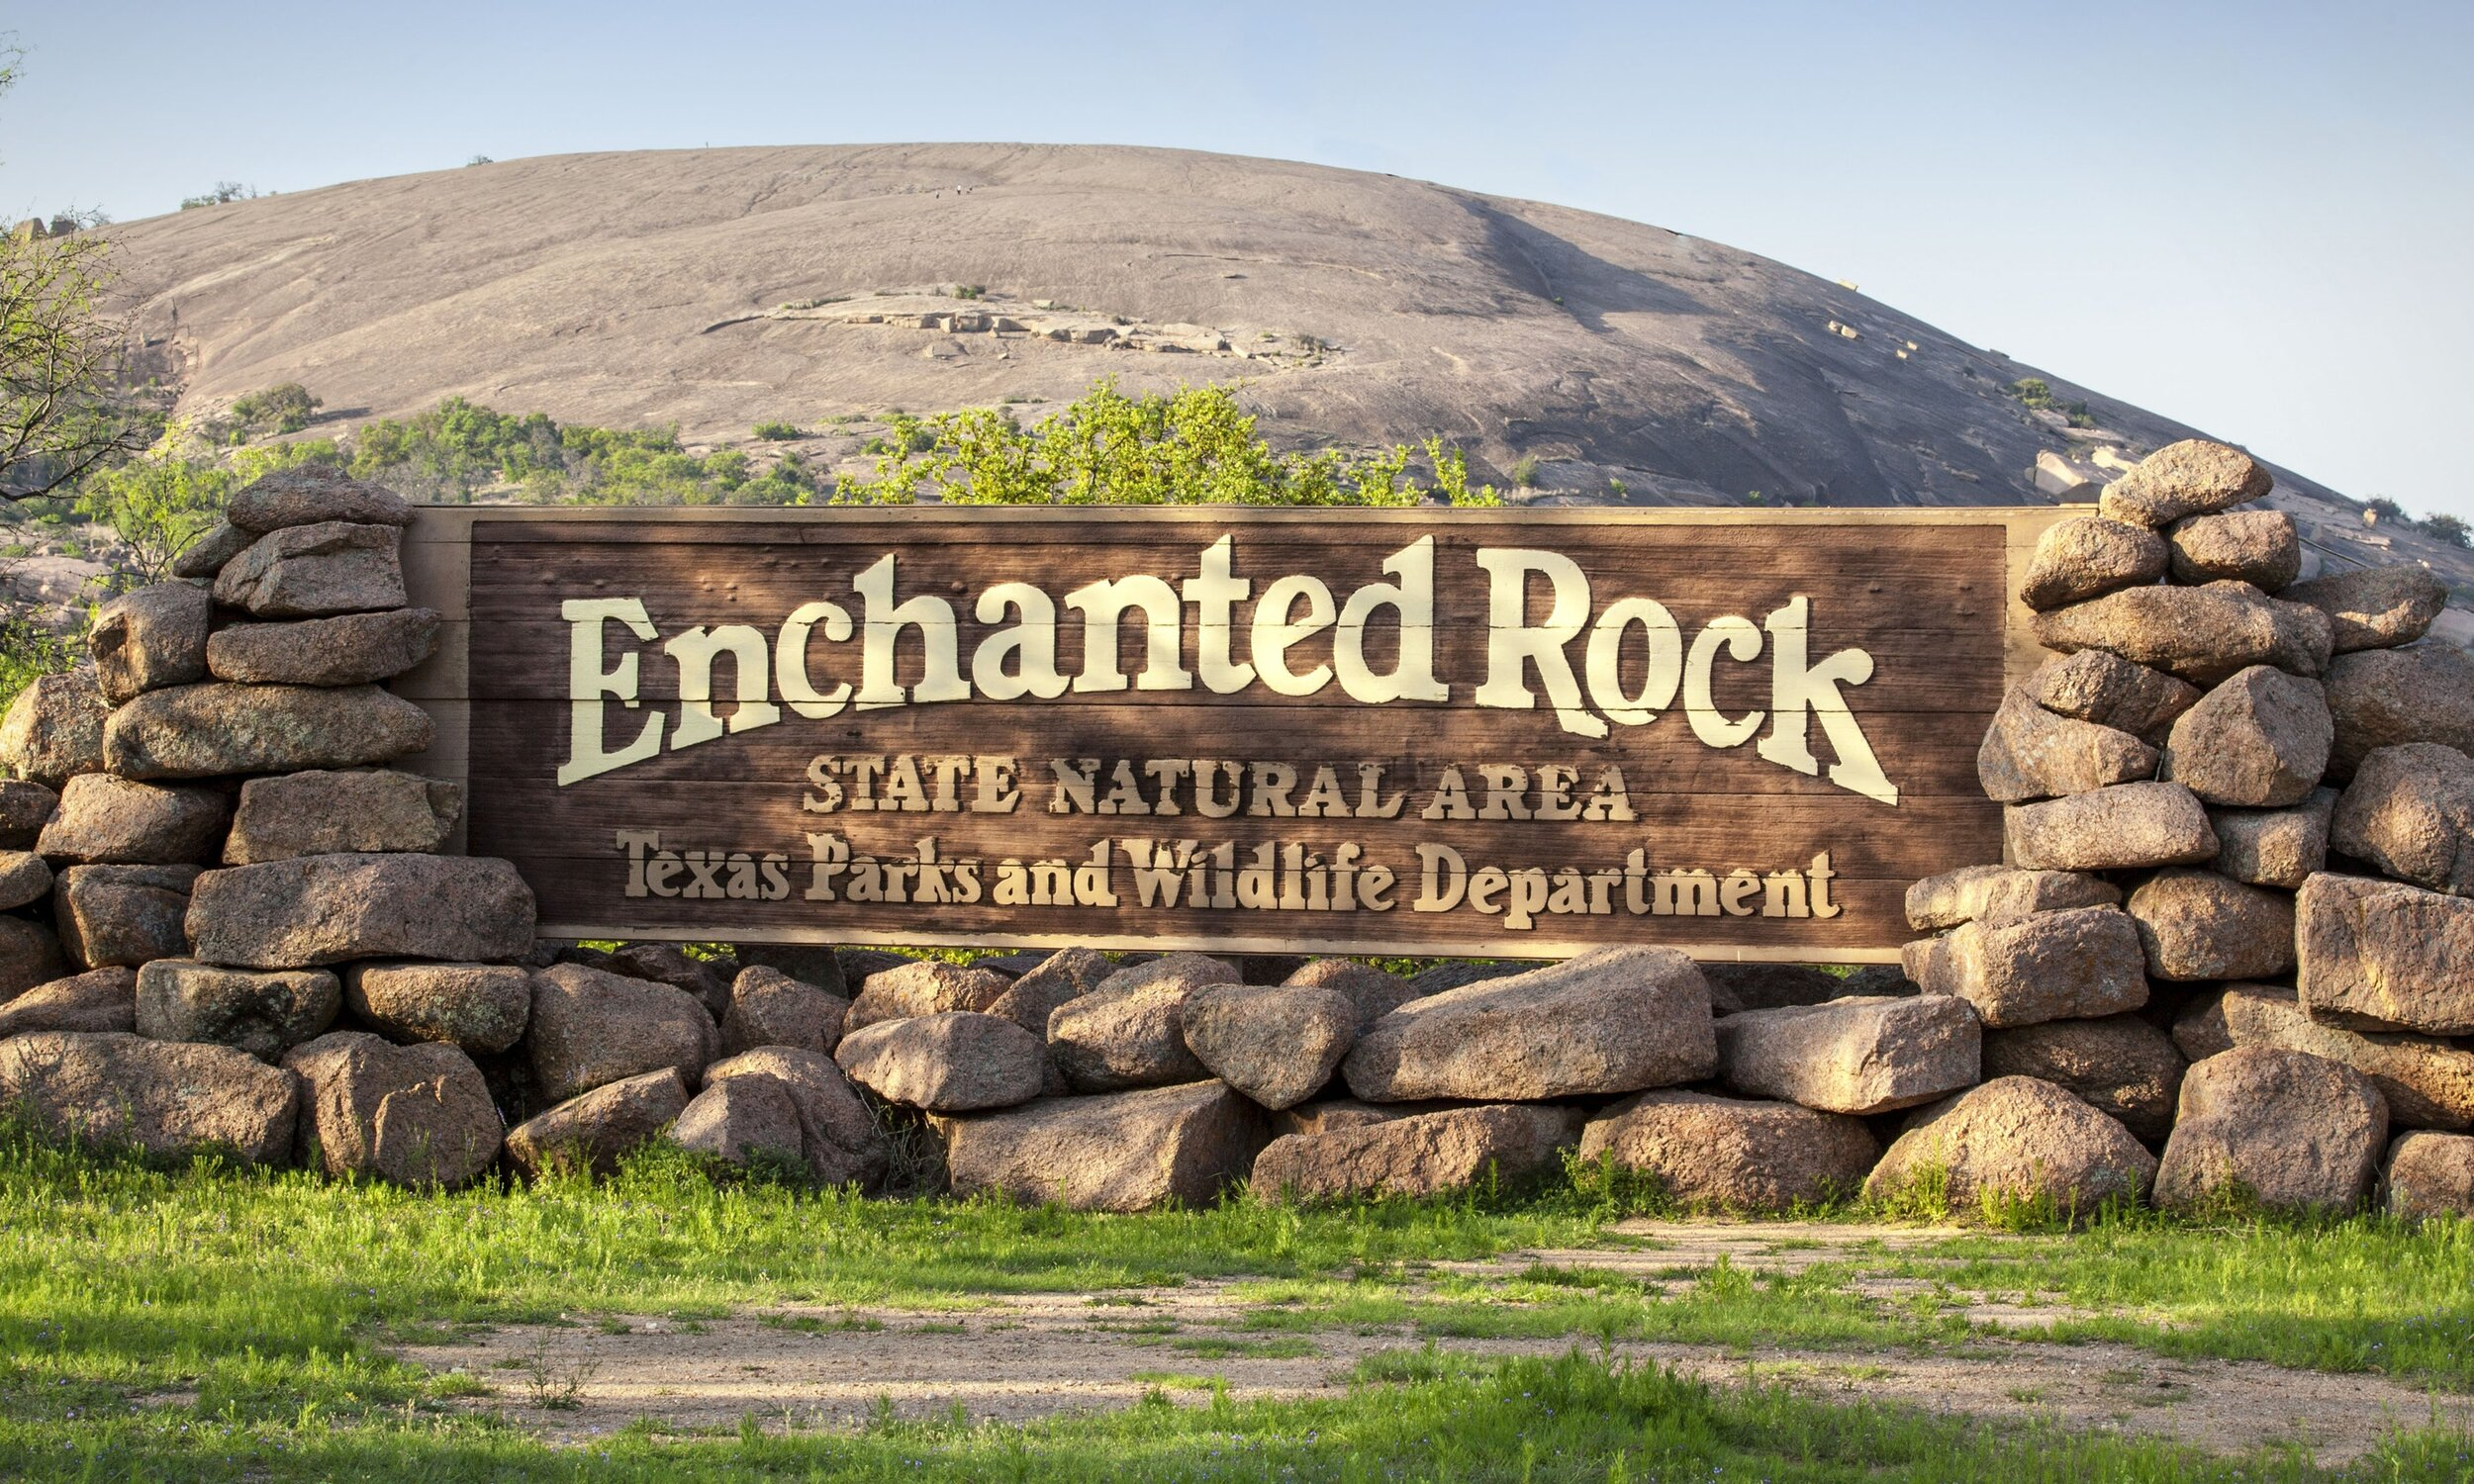 Enchanted Rock- Father Daughter - March 2020